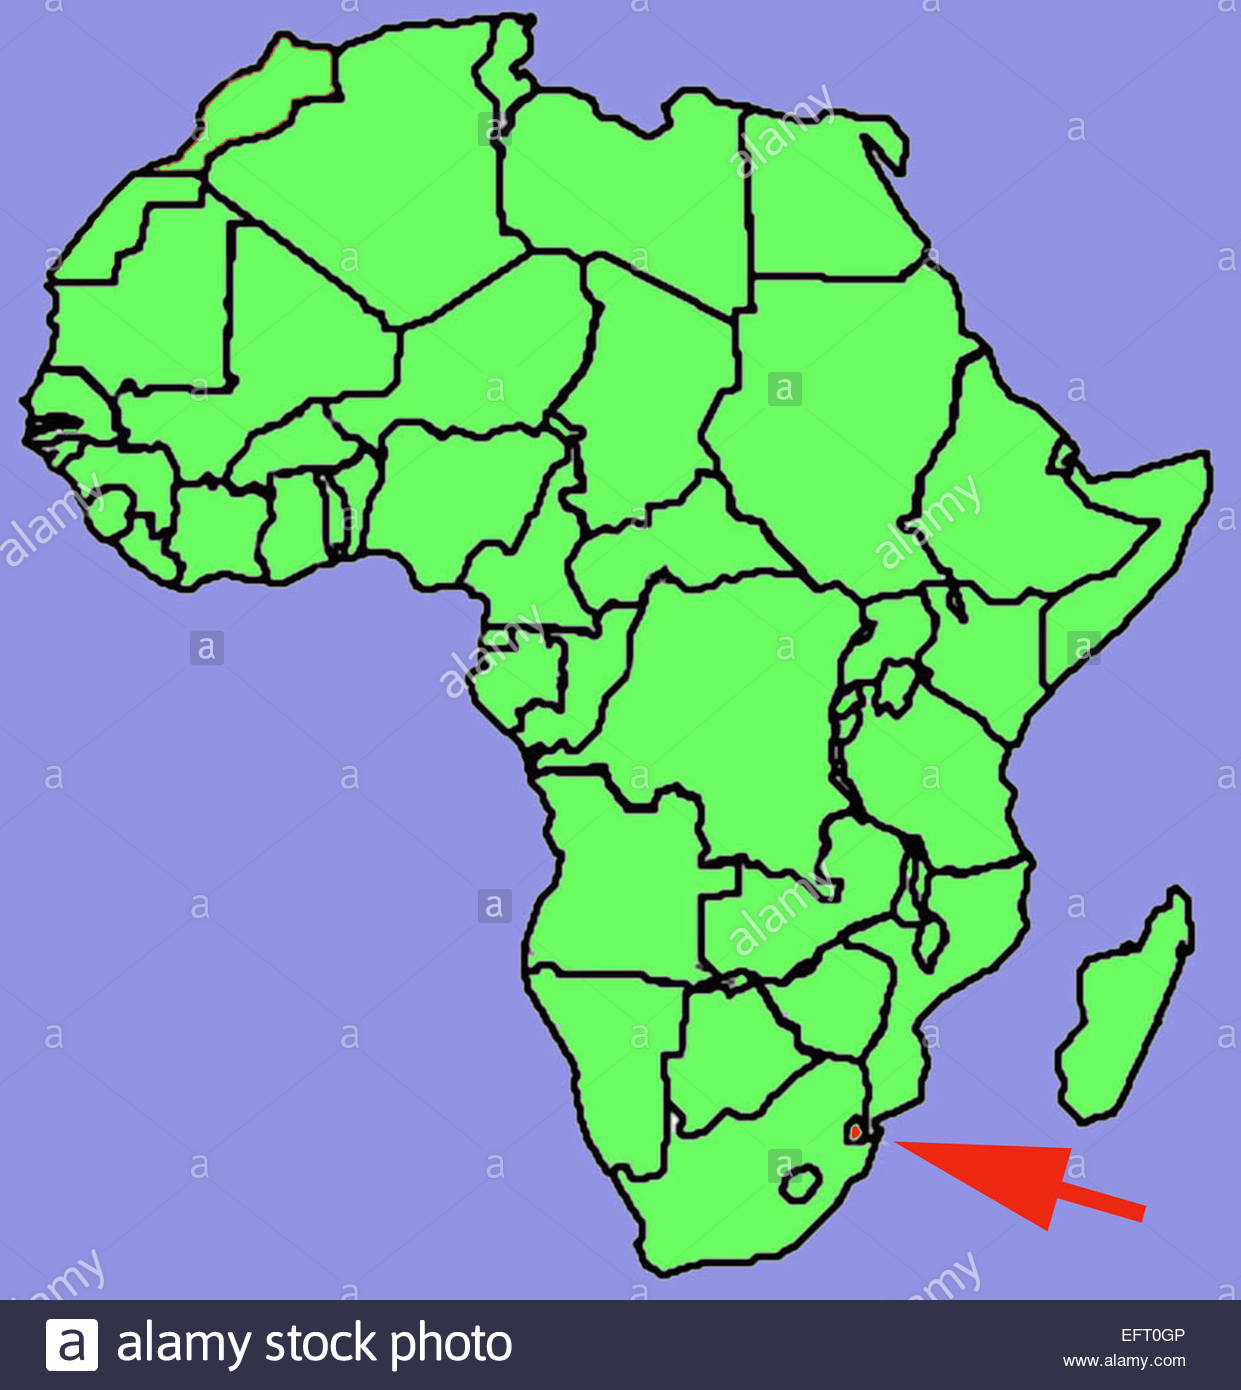 Map Of Africa Showing Location Of Swaziland Swaziland Africa Stock ...